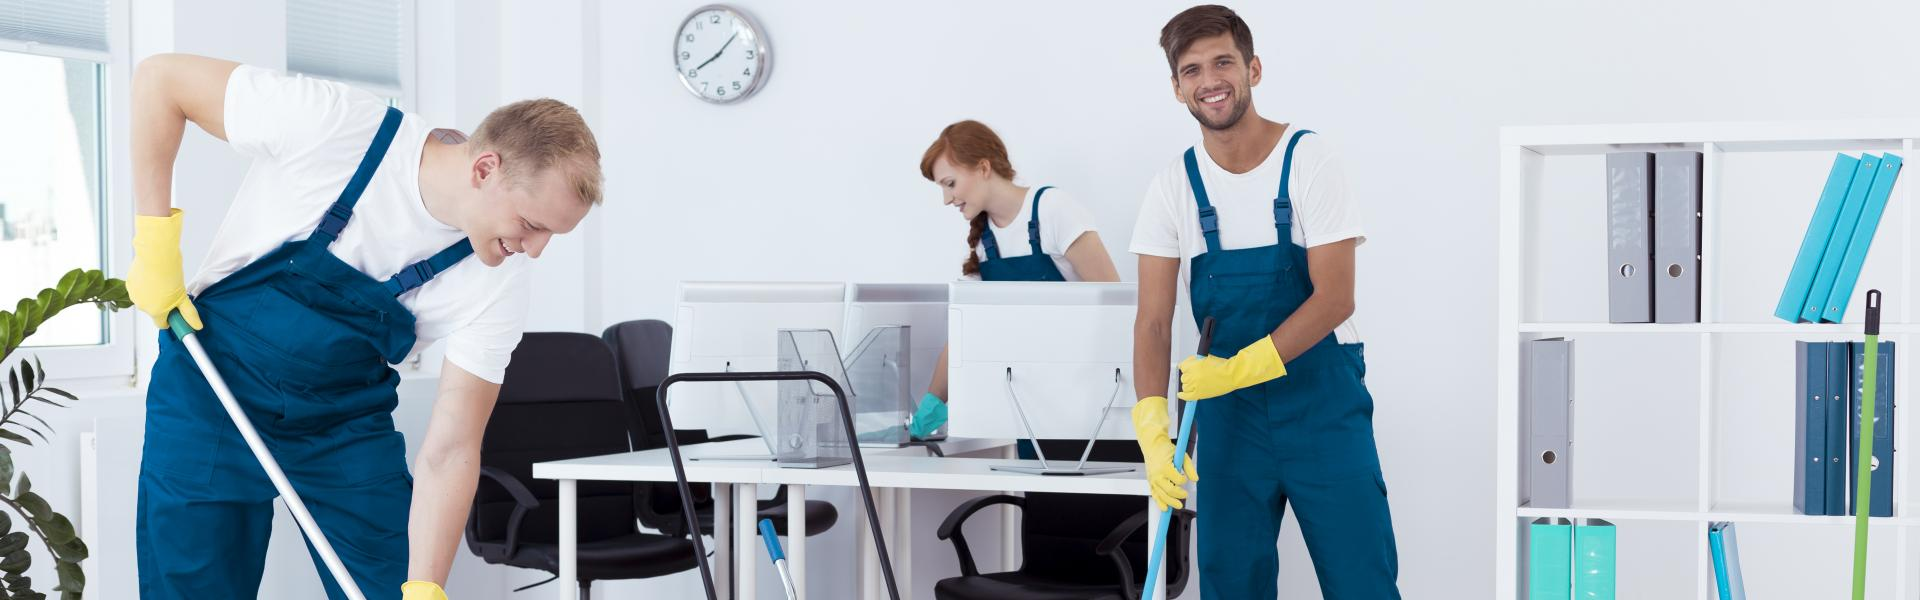 Professional cleaning team cleaning an office